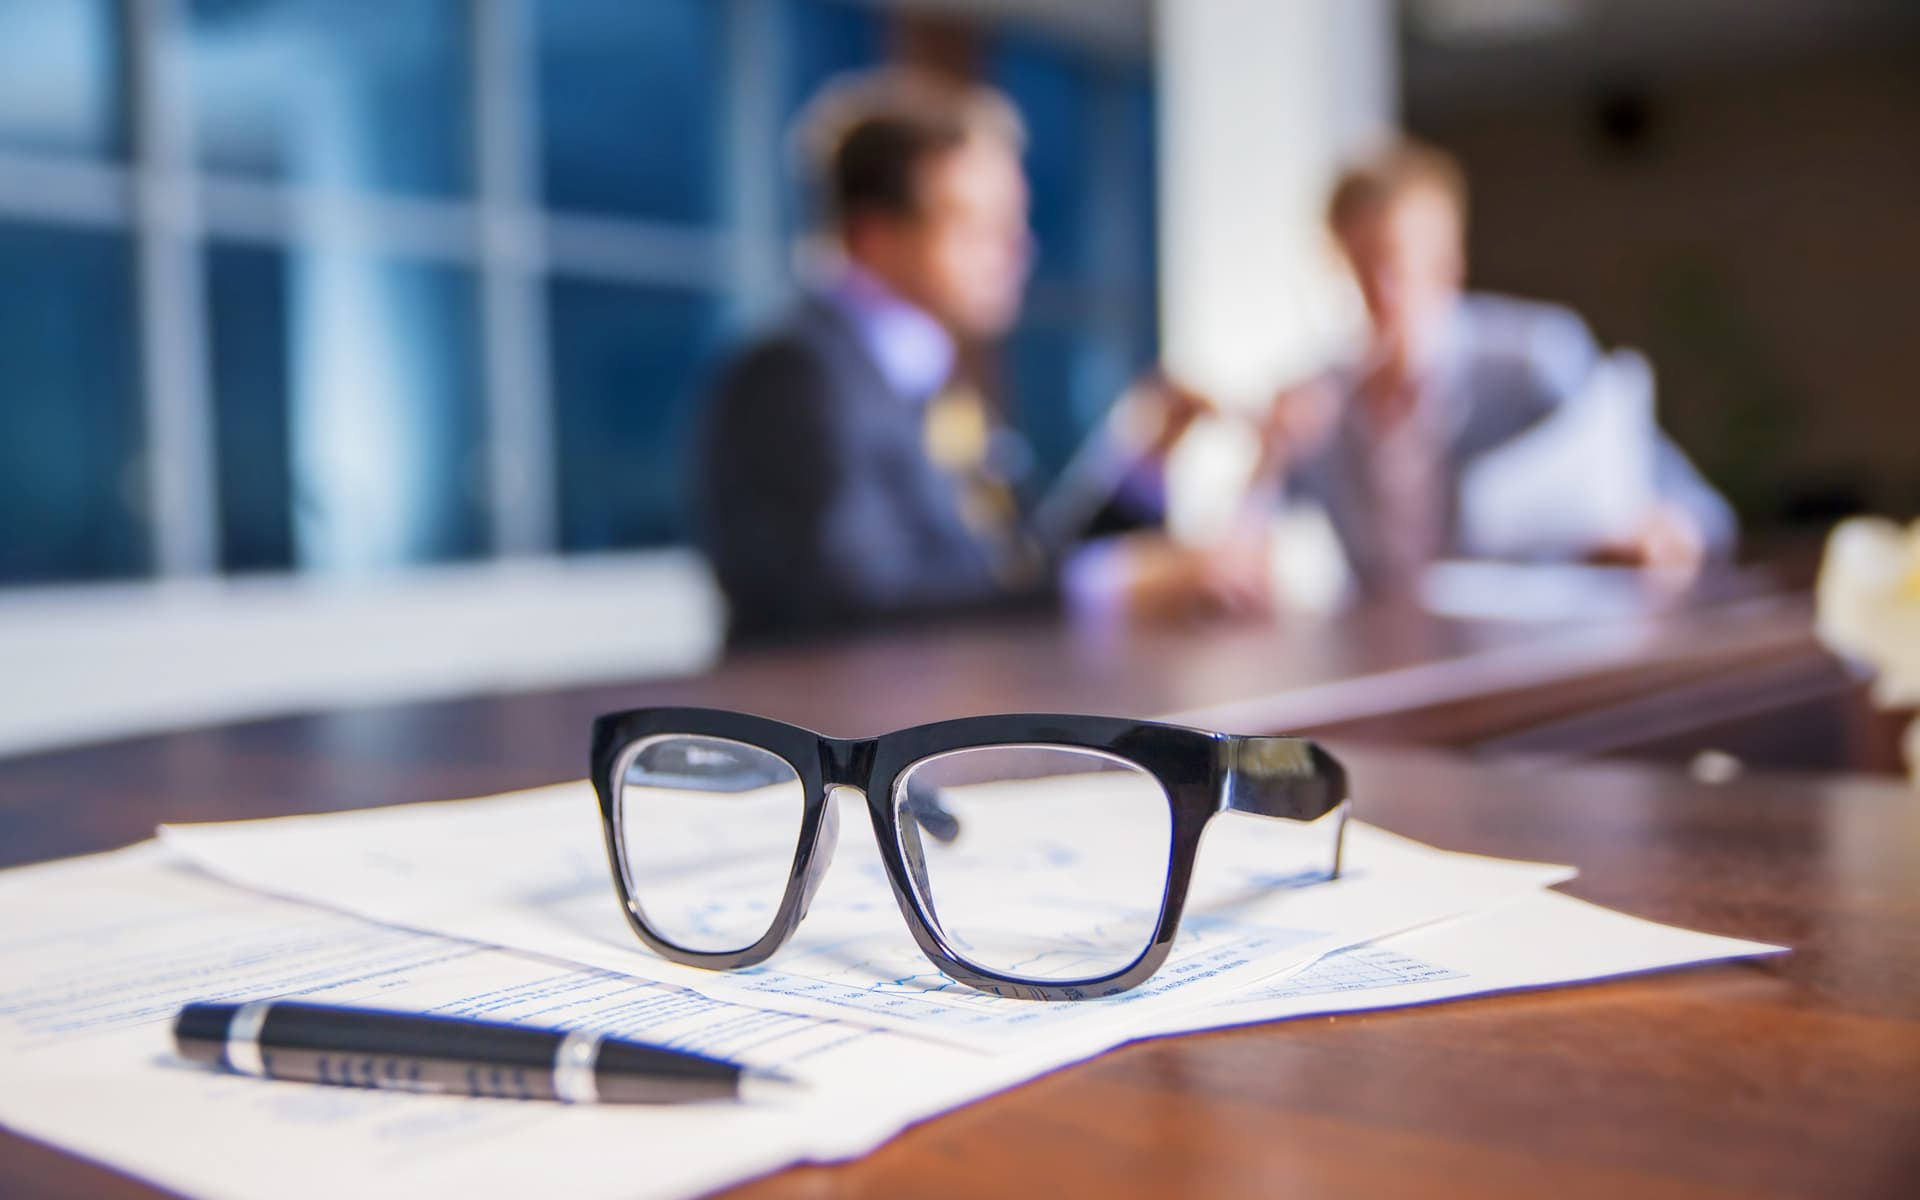 Process-Oriented Risk Management: Process-Oriented Risk Management: Glasses laying on a note book